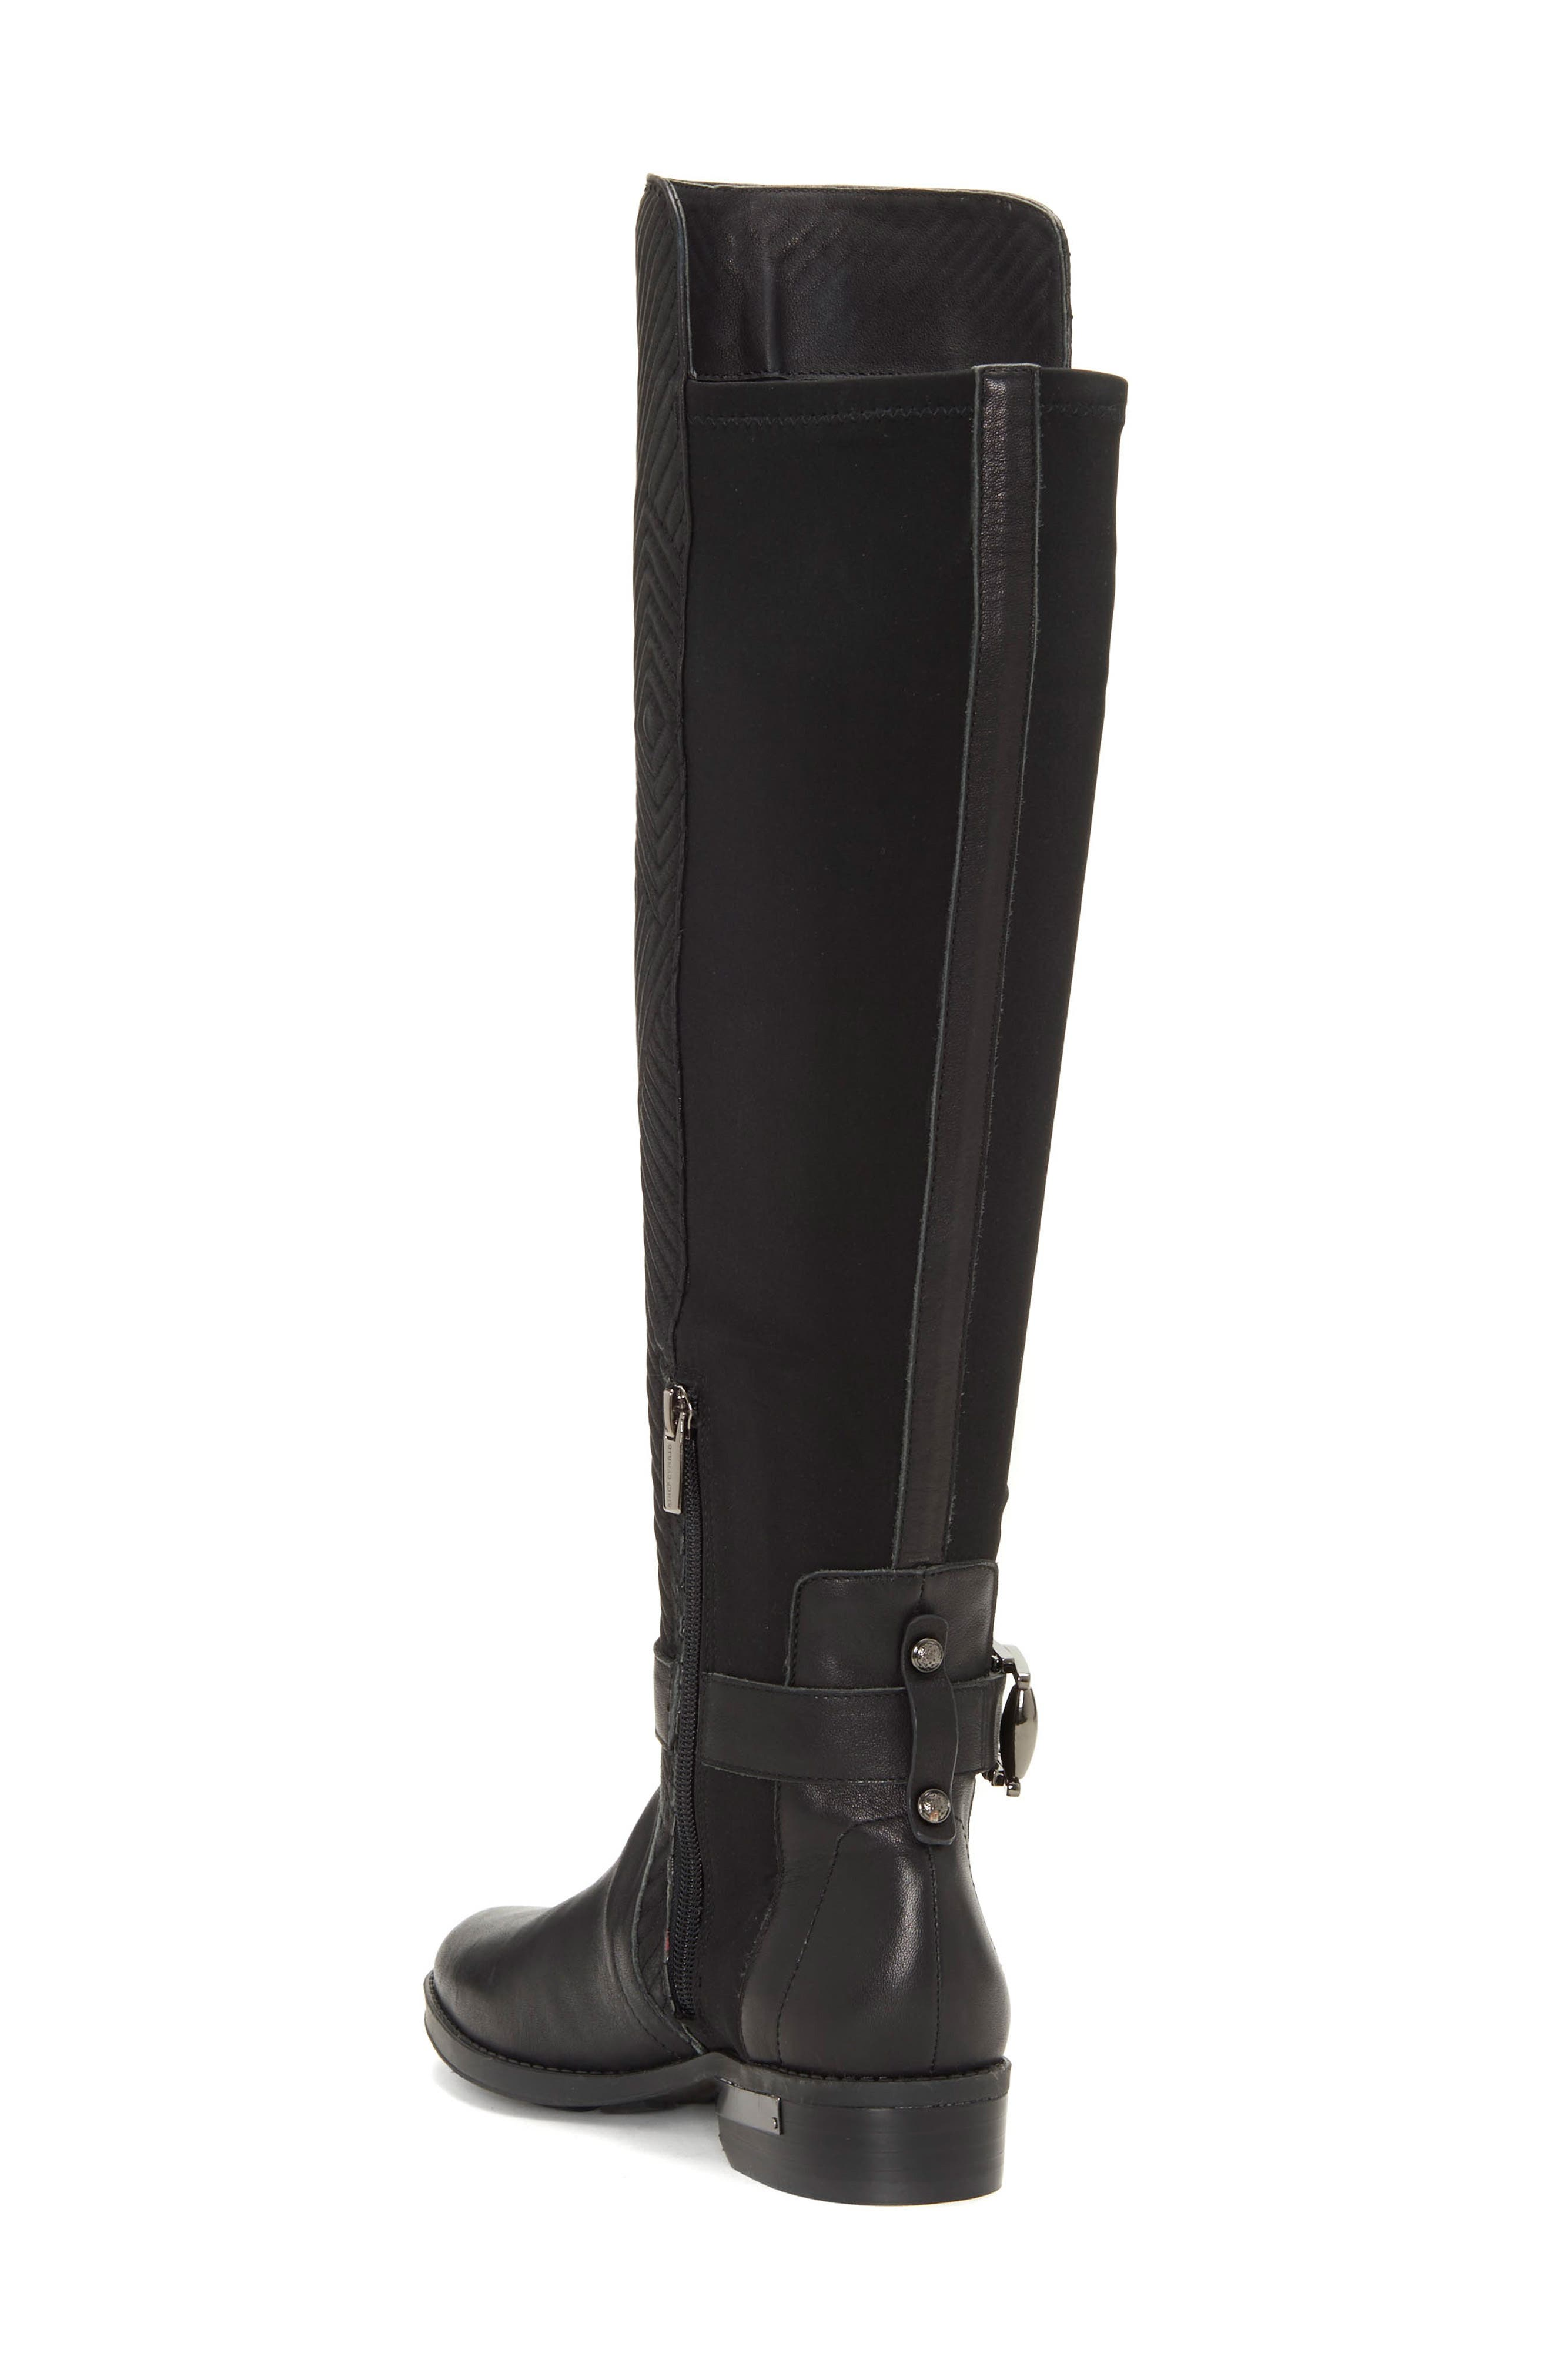 Pordalia Over-the-Knee Boot,                             Alternate thumbnail 2, color,                             BLACK LEATHER